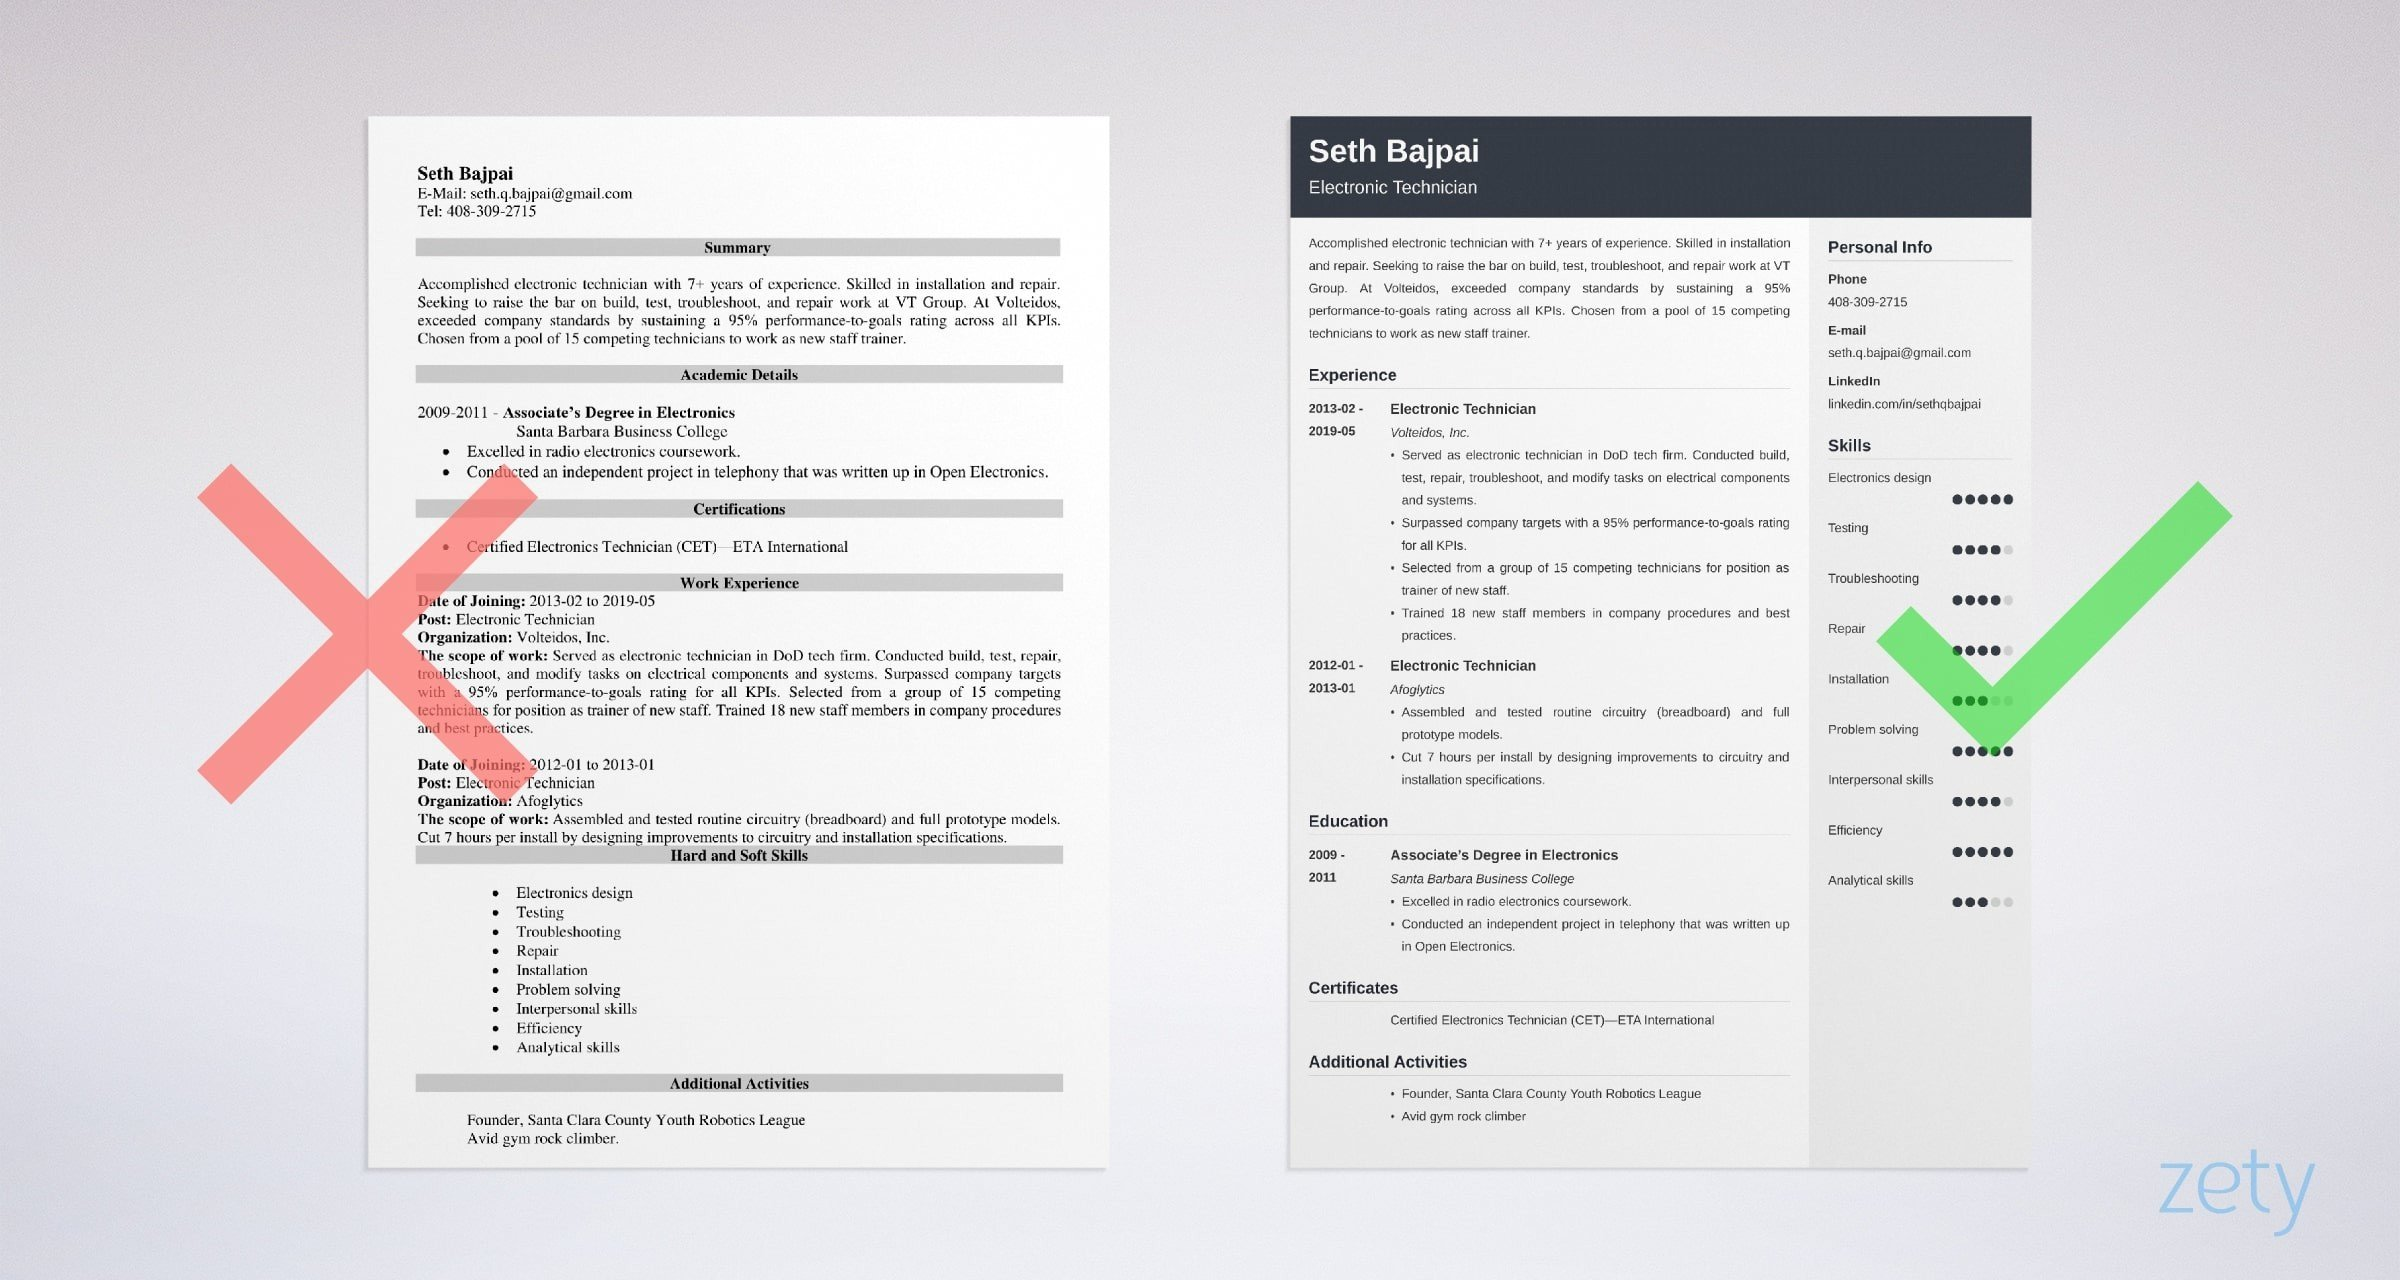 electronic technician resume sample guide template example job first rasmussen canva free Resume Electronic Technician Resume Template